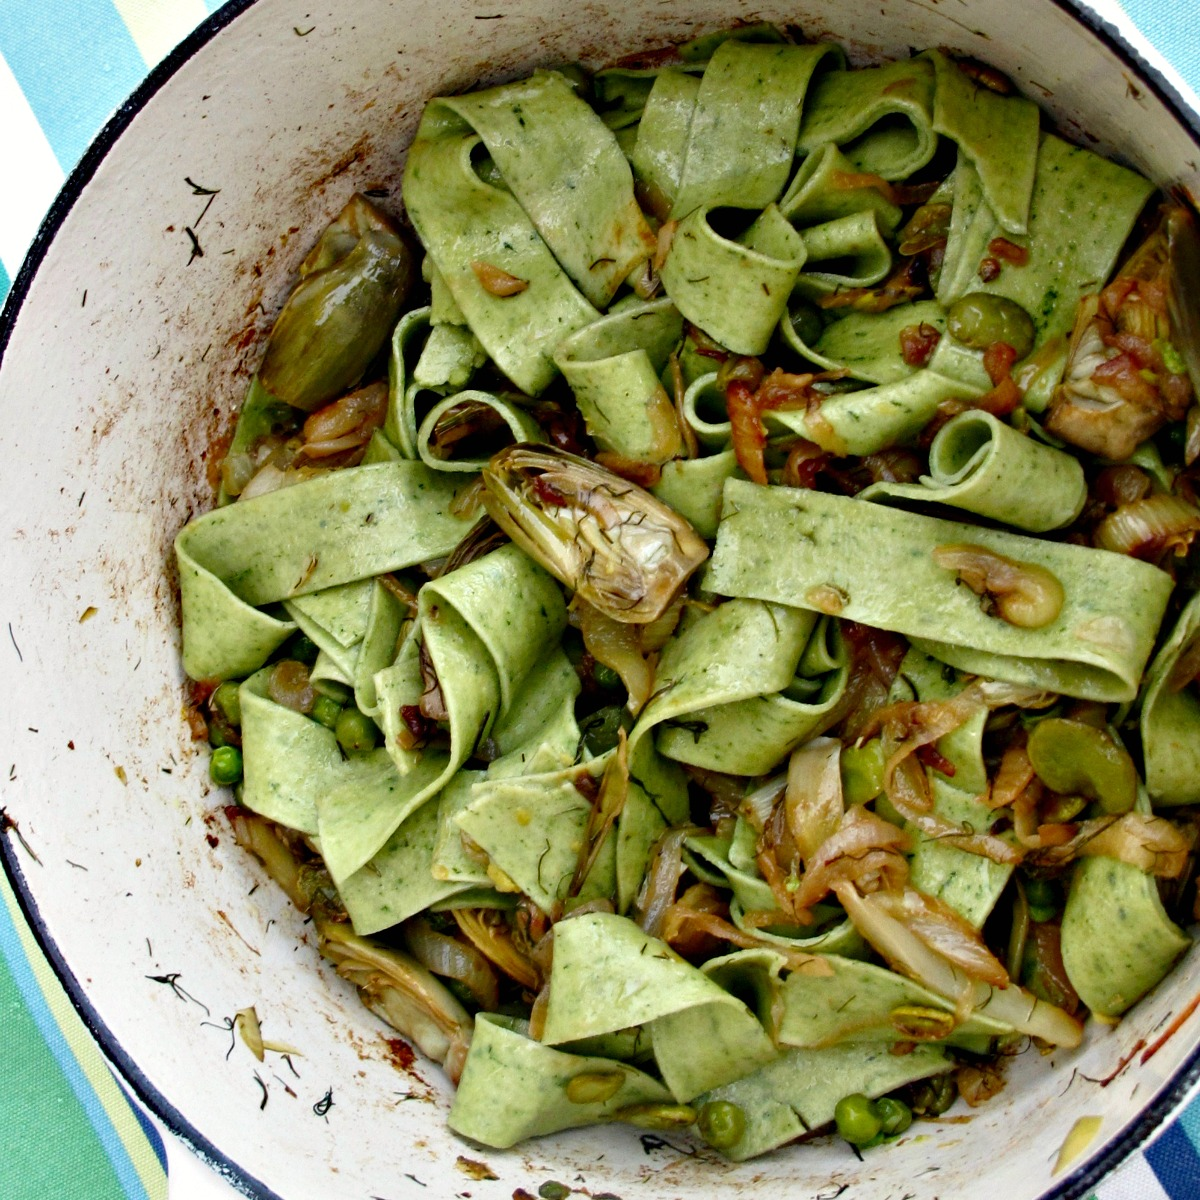 La Fritteda with Pasta, Artichokes, Peas, Fava Beans from Spinach Tiger #pasta